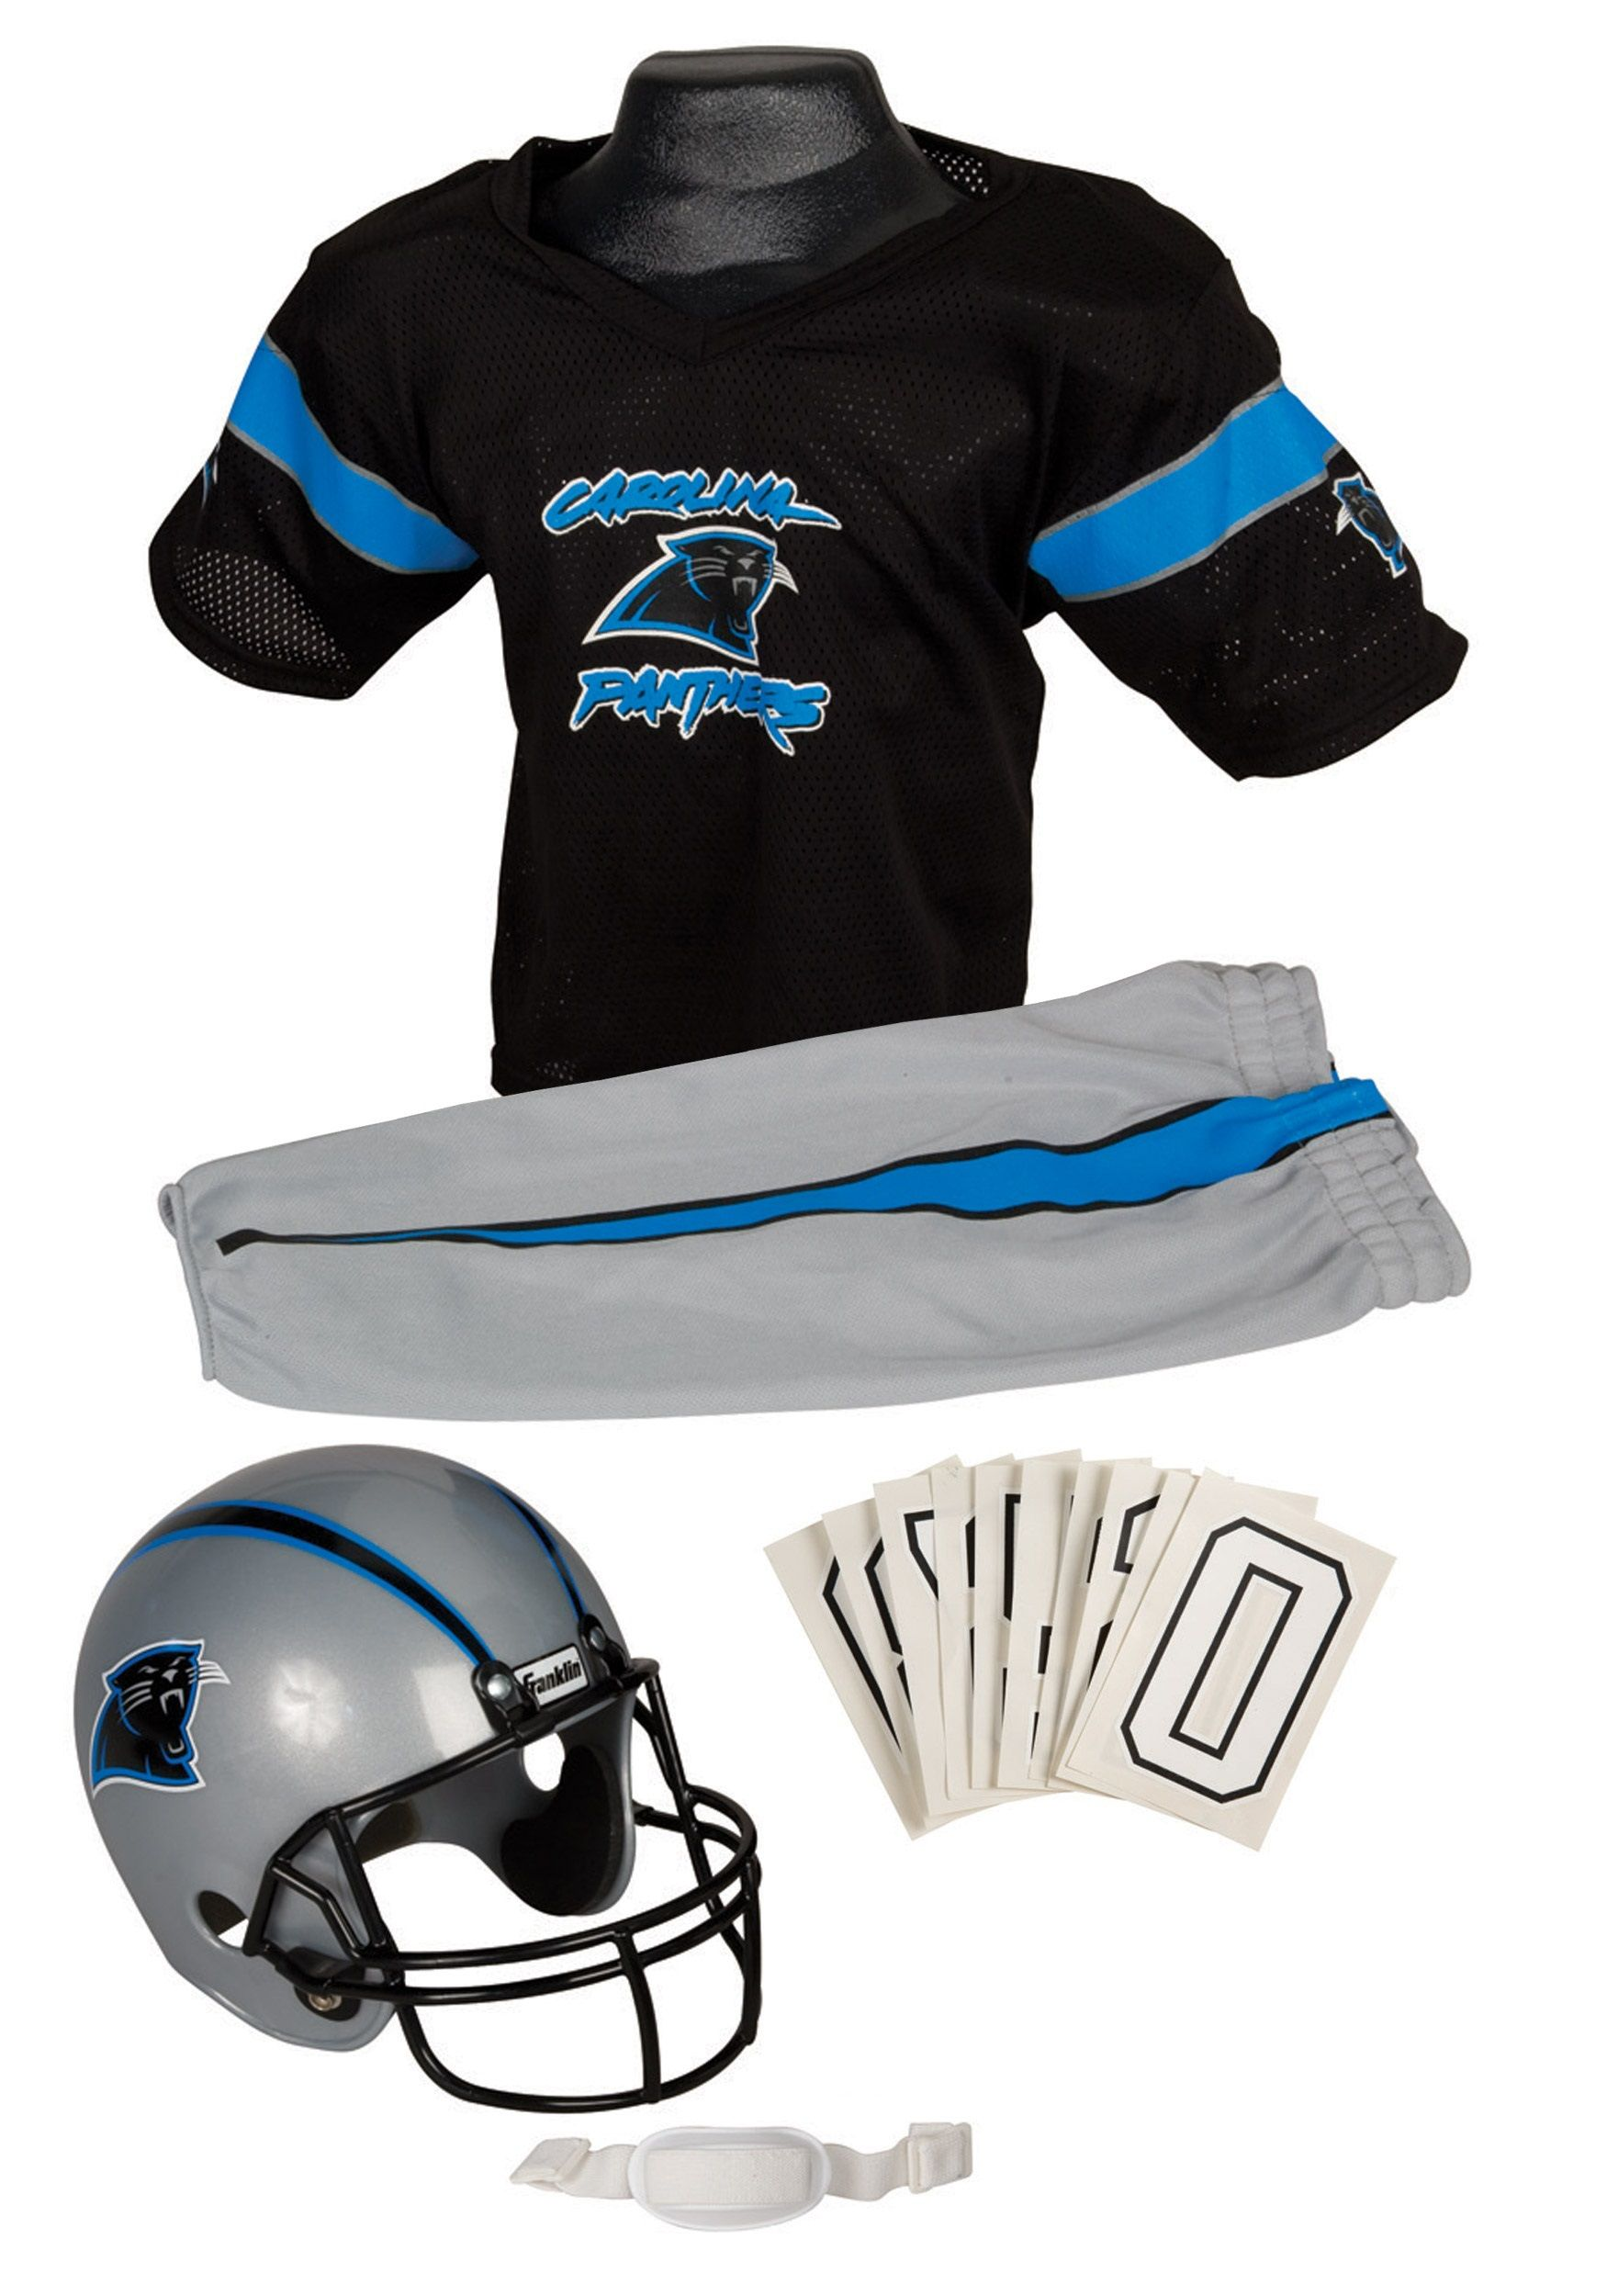 NFL Panthers Uniform Costume  60b0e4ed4